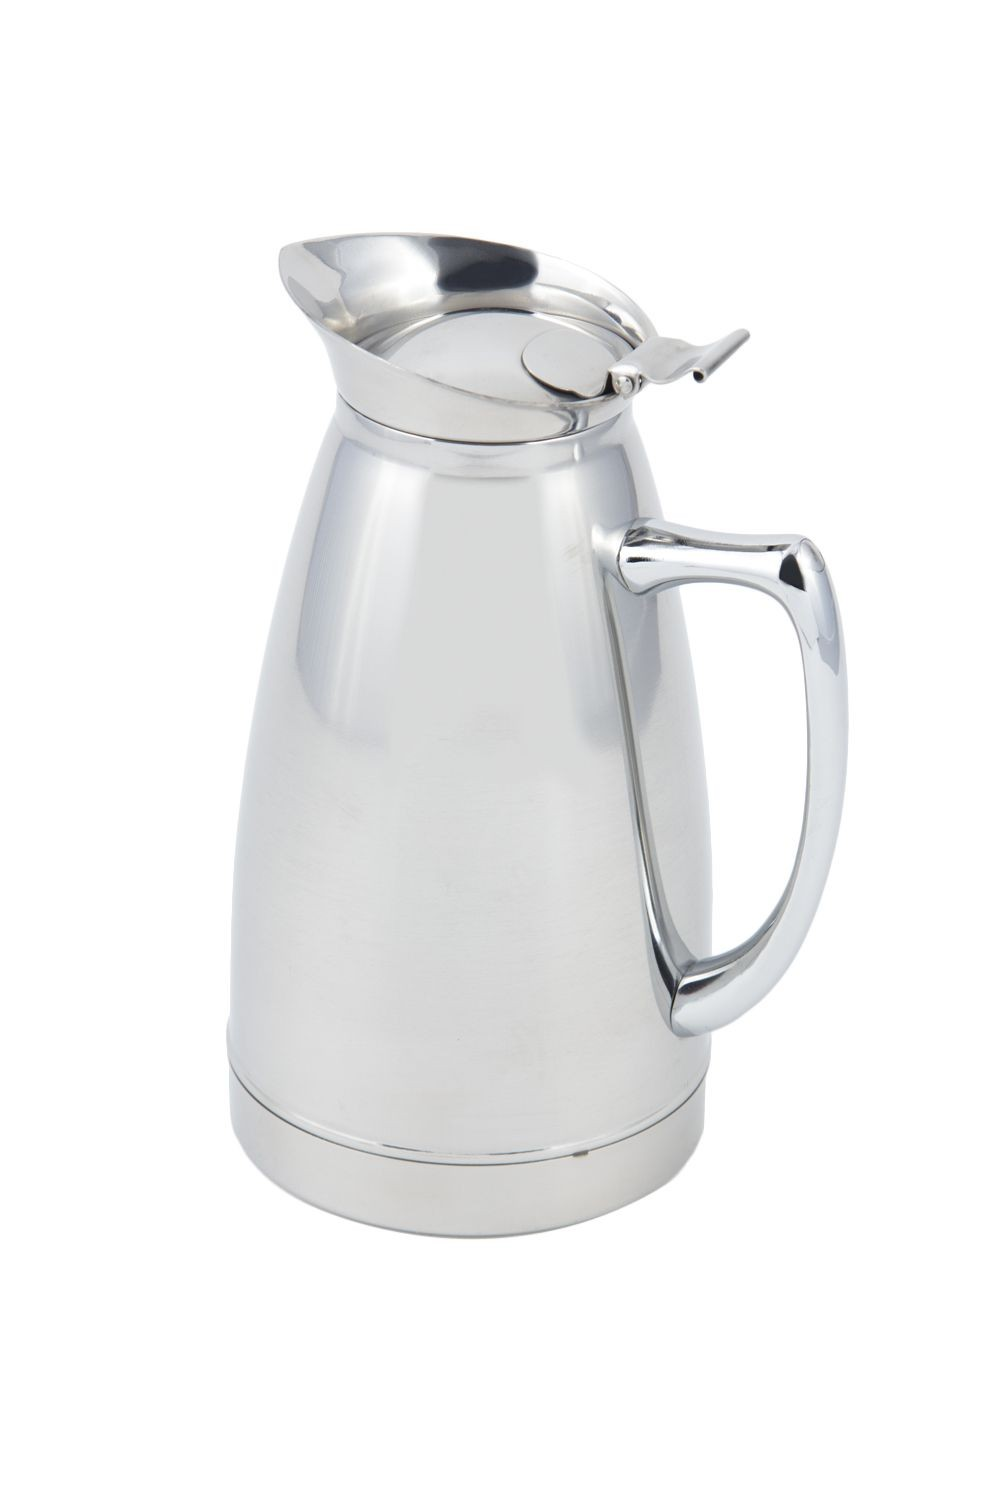 Bon Chef 4051 Stainless Steel Insulated Server, 20 oz., Set of 6